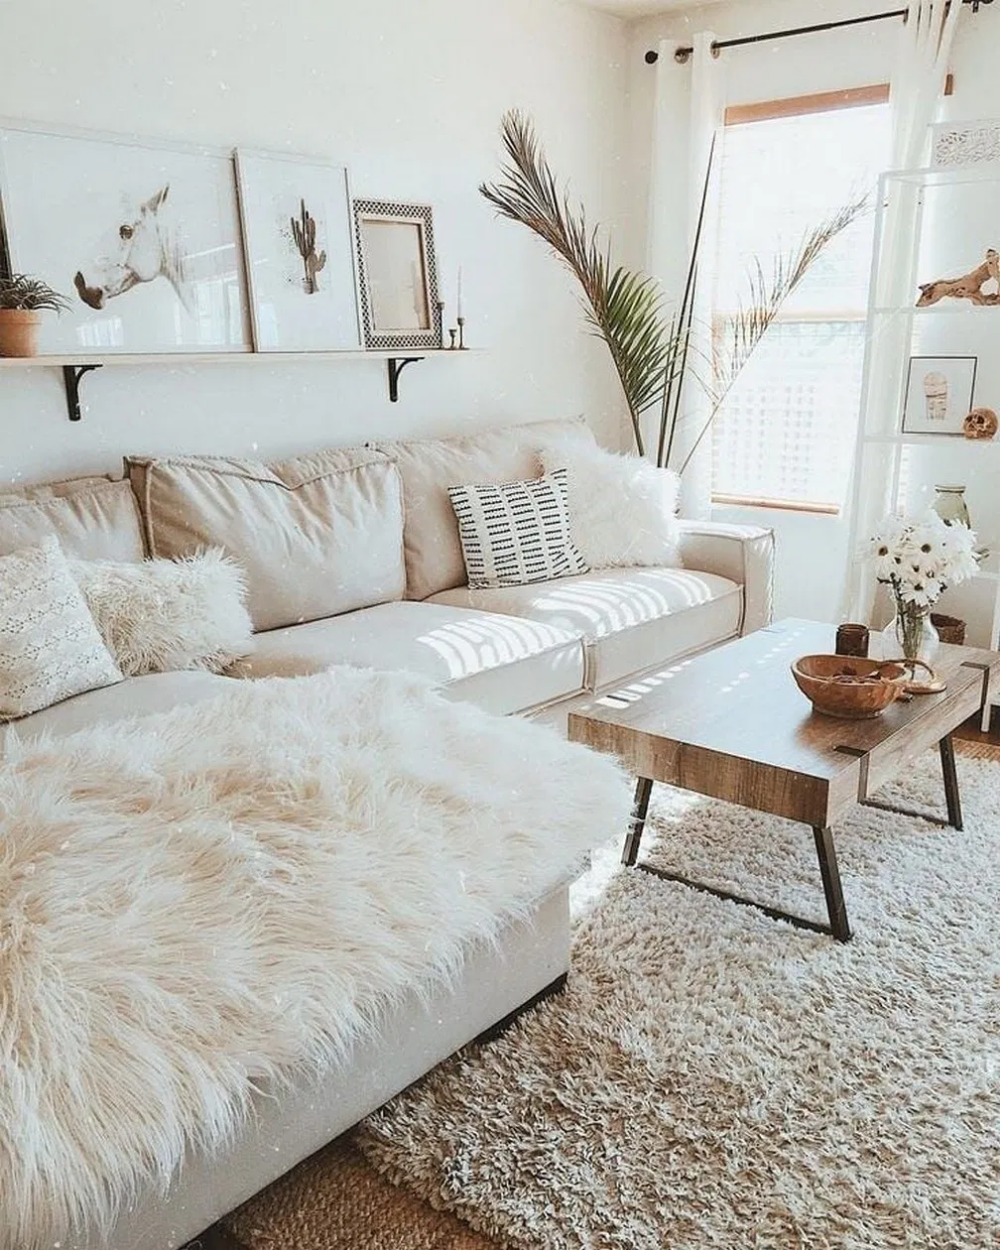 17 Awesome Living Room Decorating Ideas In Elegant White 42 Livingroomdecor Whitelivingr Simple Living Room Designs Farm House Living Room Simple Living Room